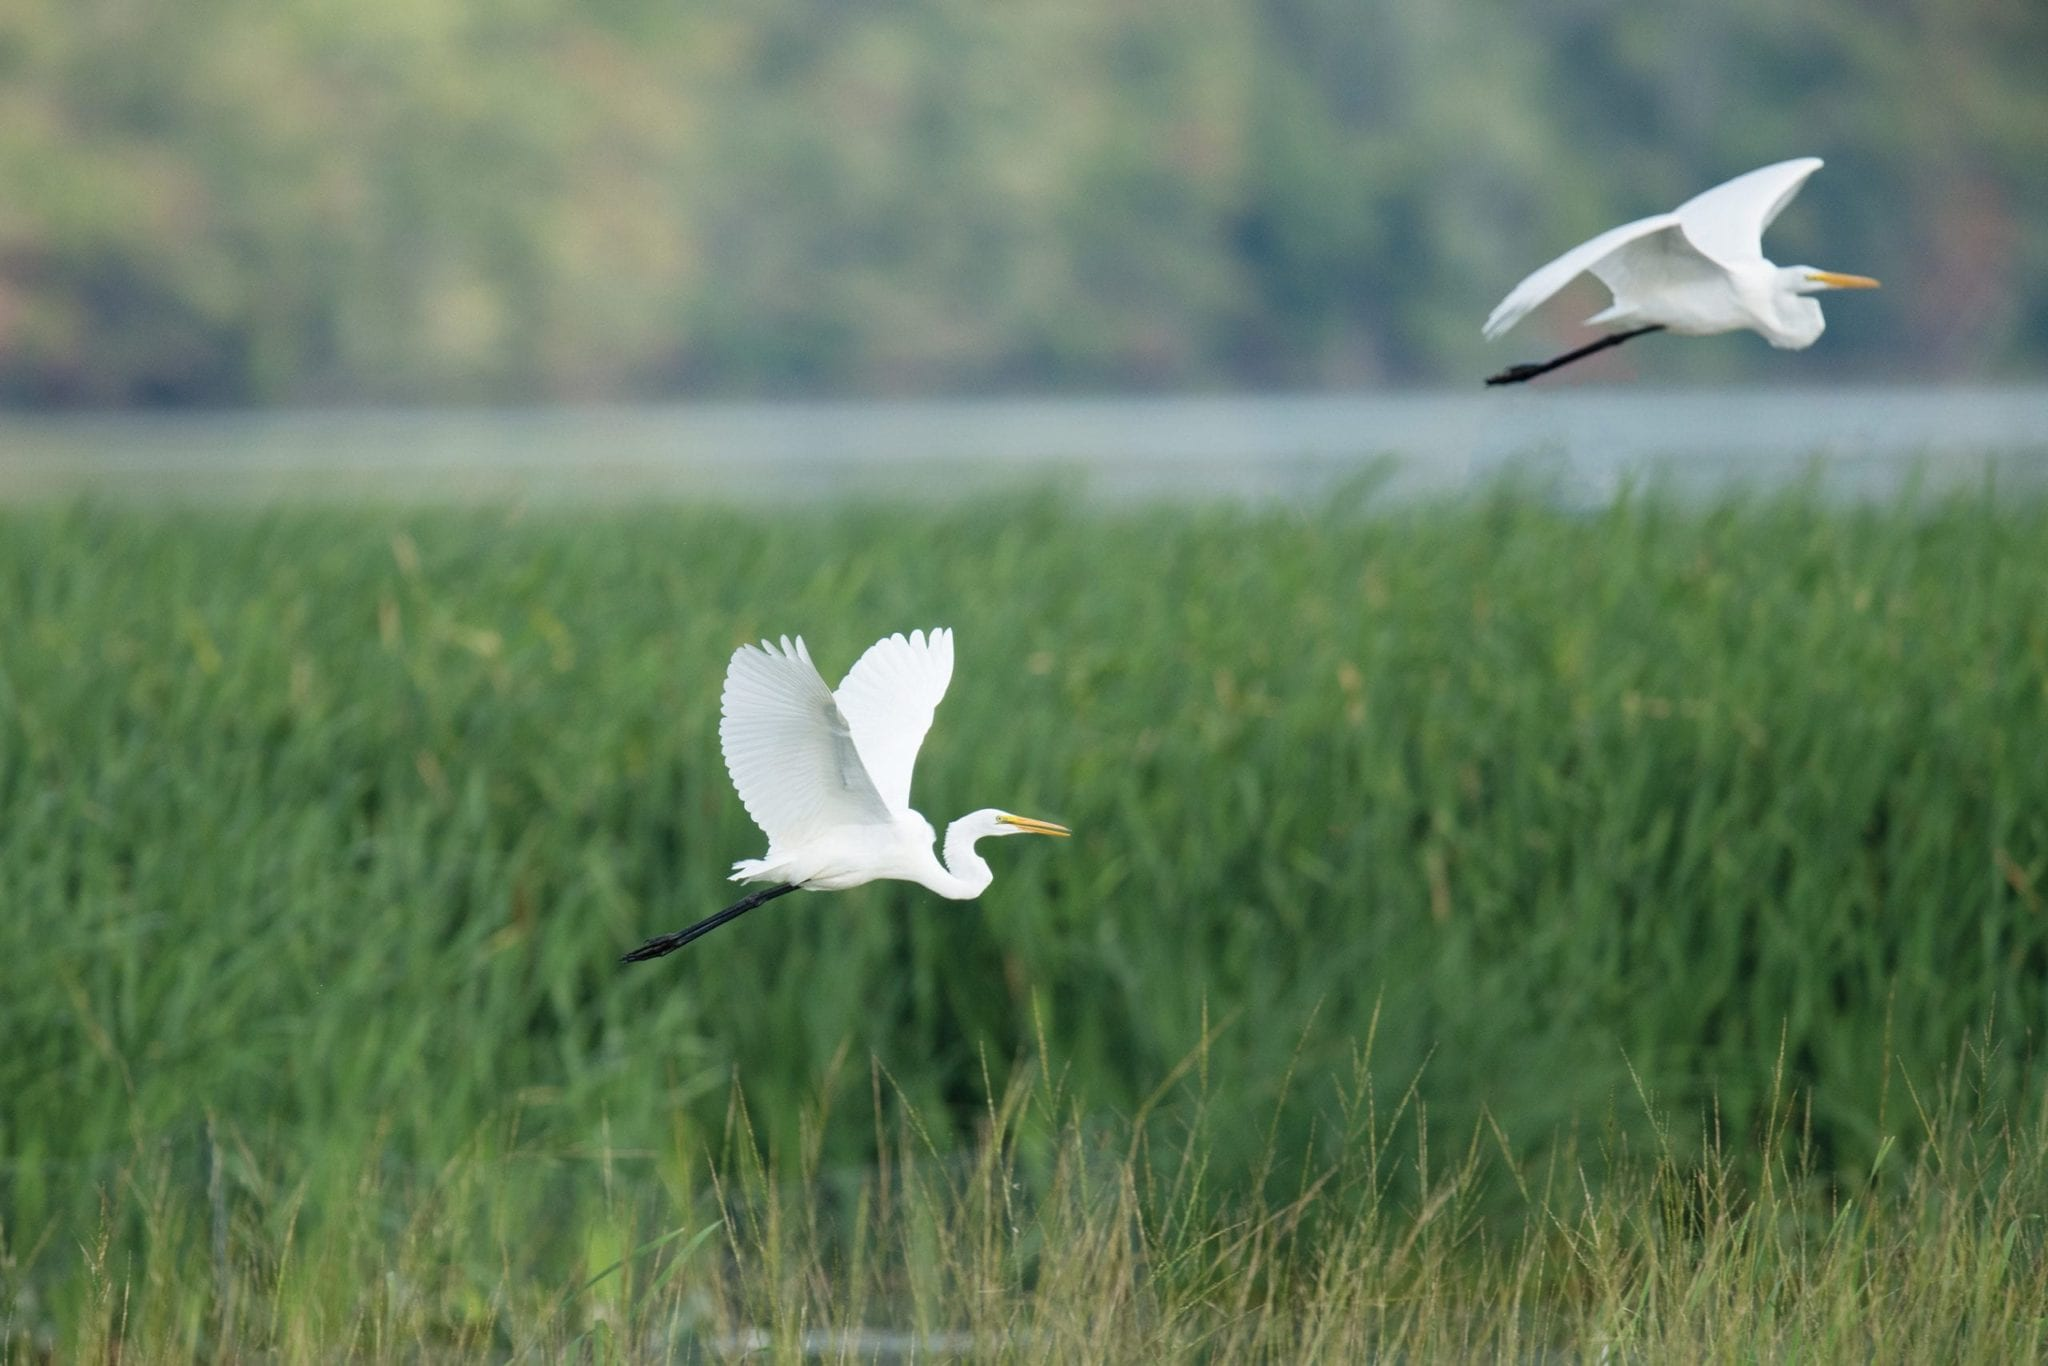 Local photographers to showcase birds returning to Onondaga Lake